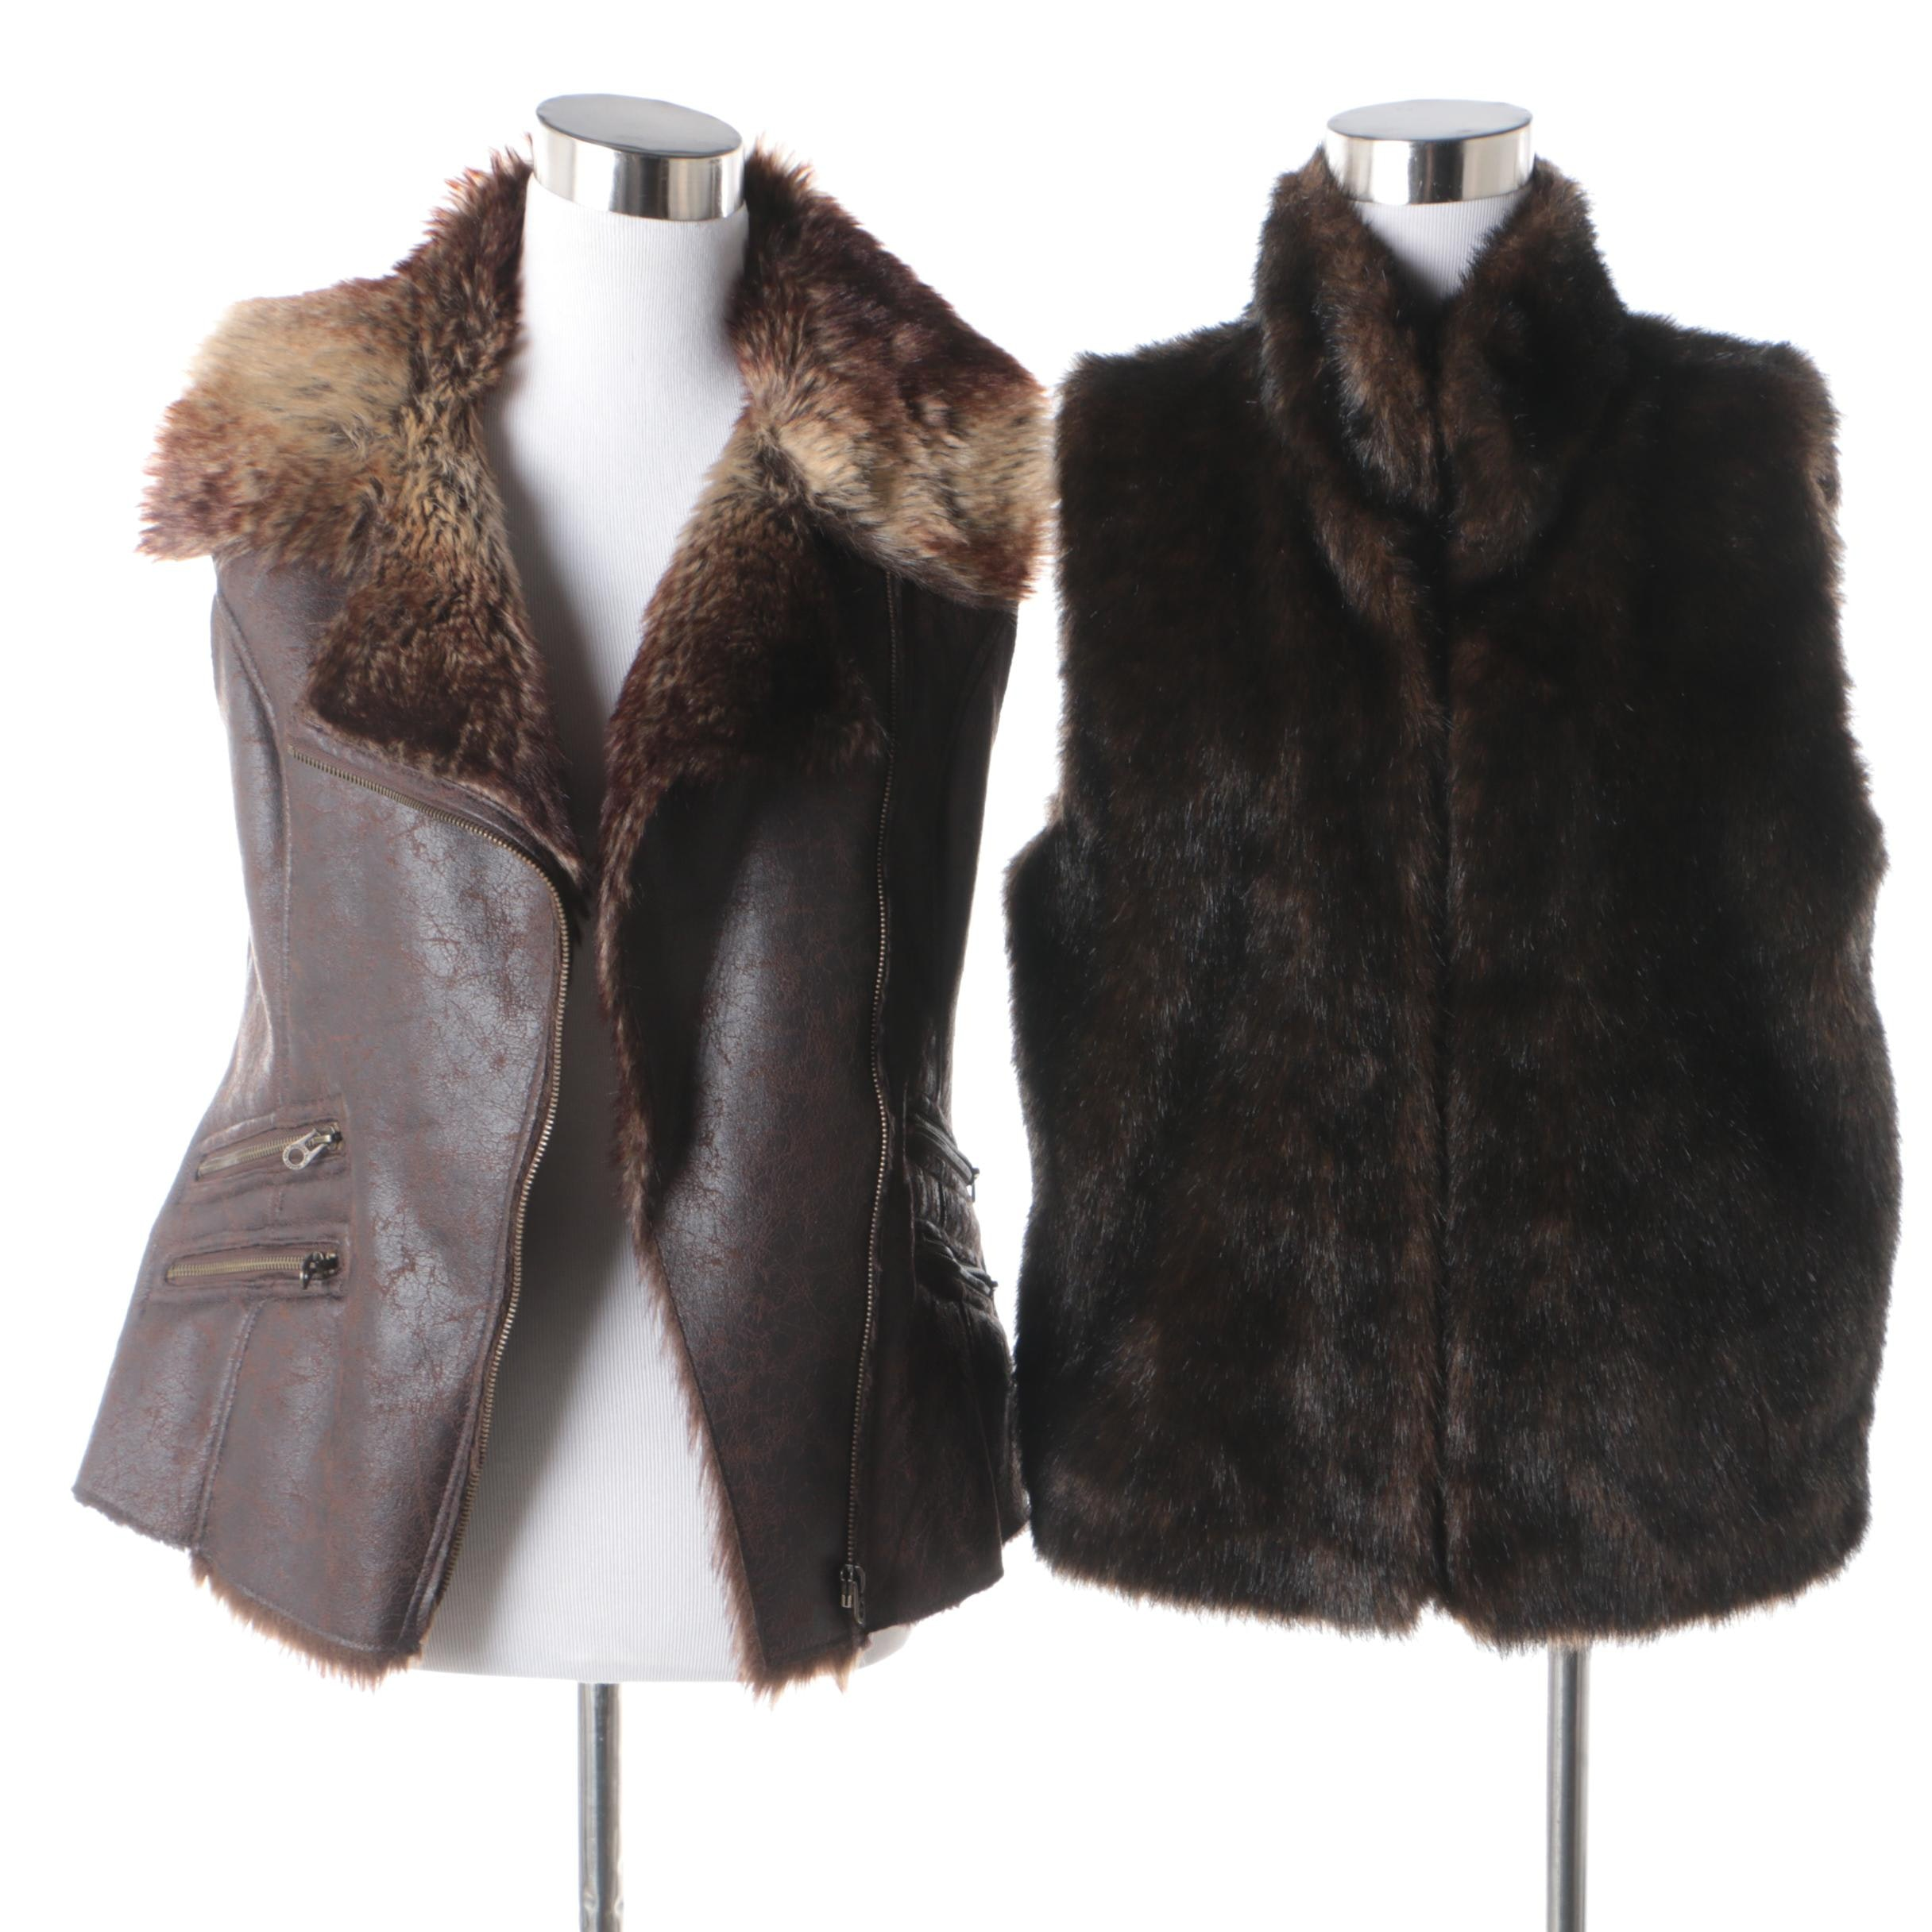 Valerie Stevens and MO x Members Only Faux Fur Vests